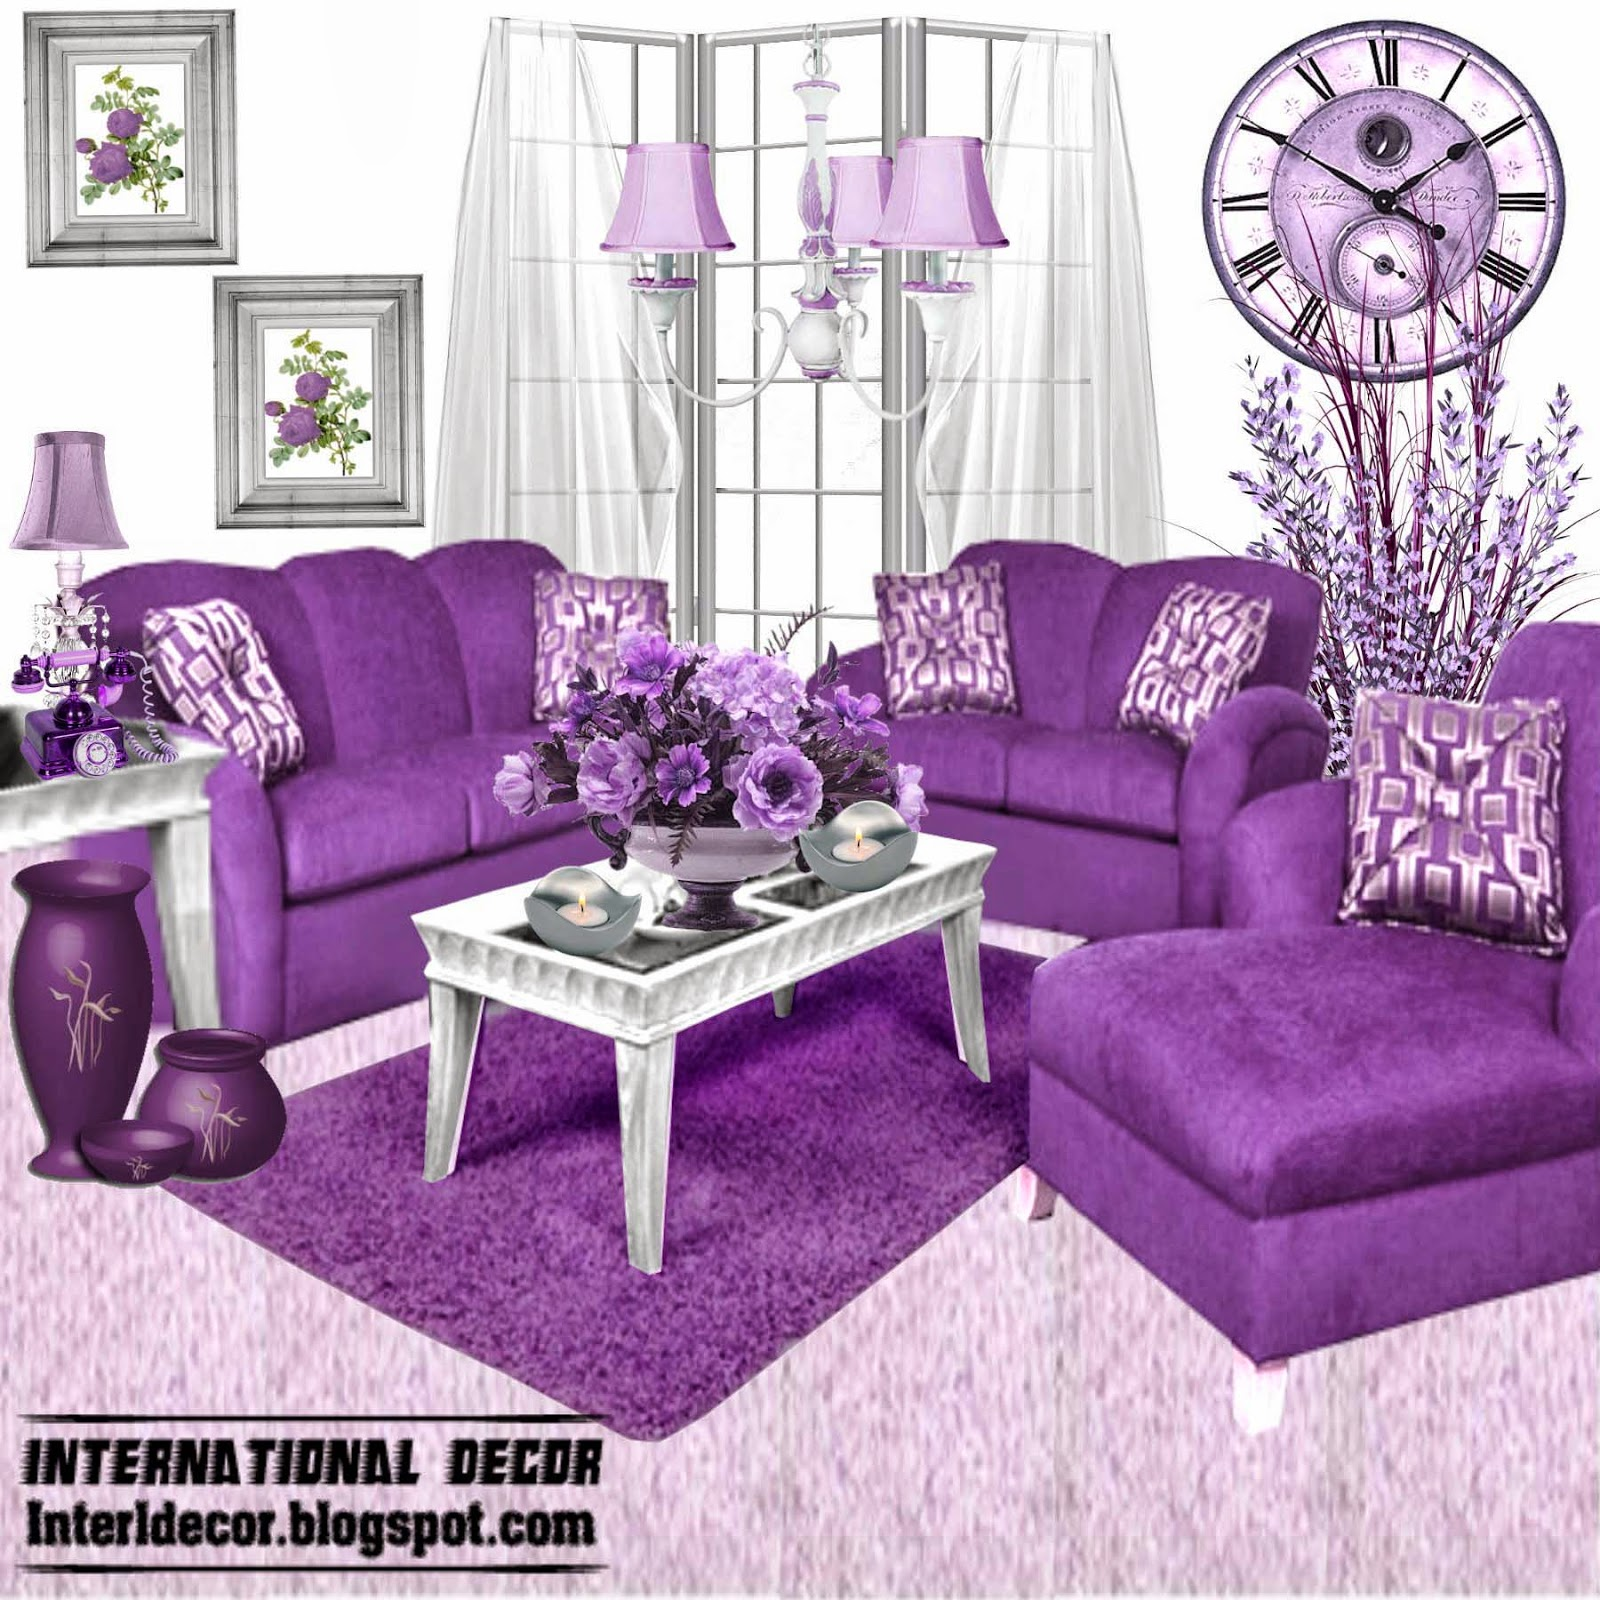 Purple Furniture, Sets, Sofas, Chairs For Living Room Interior Designs